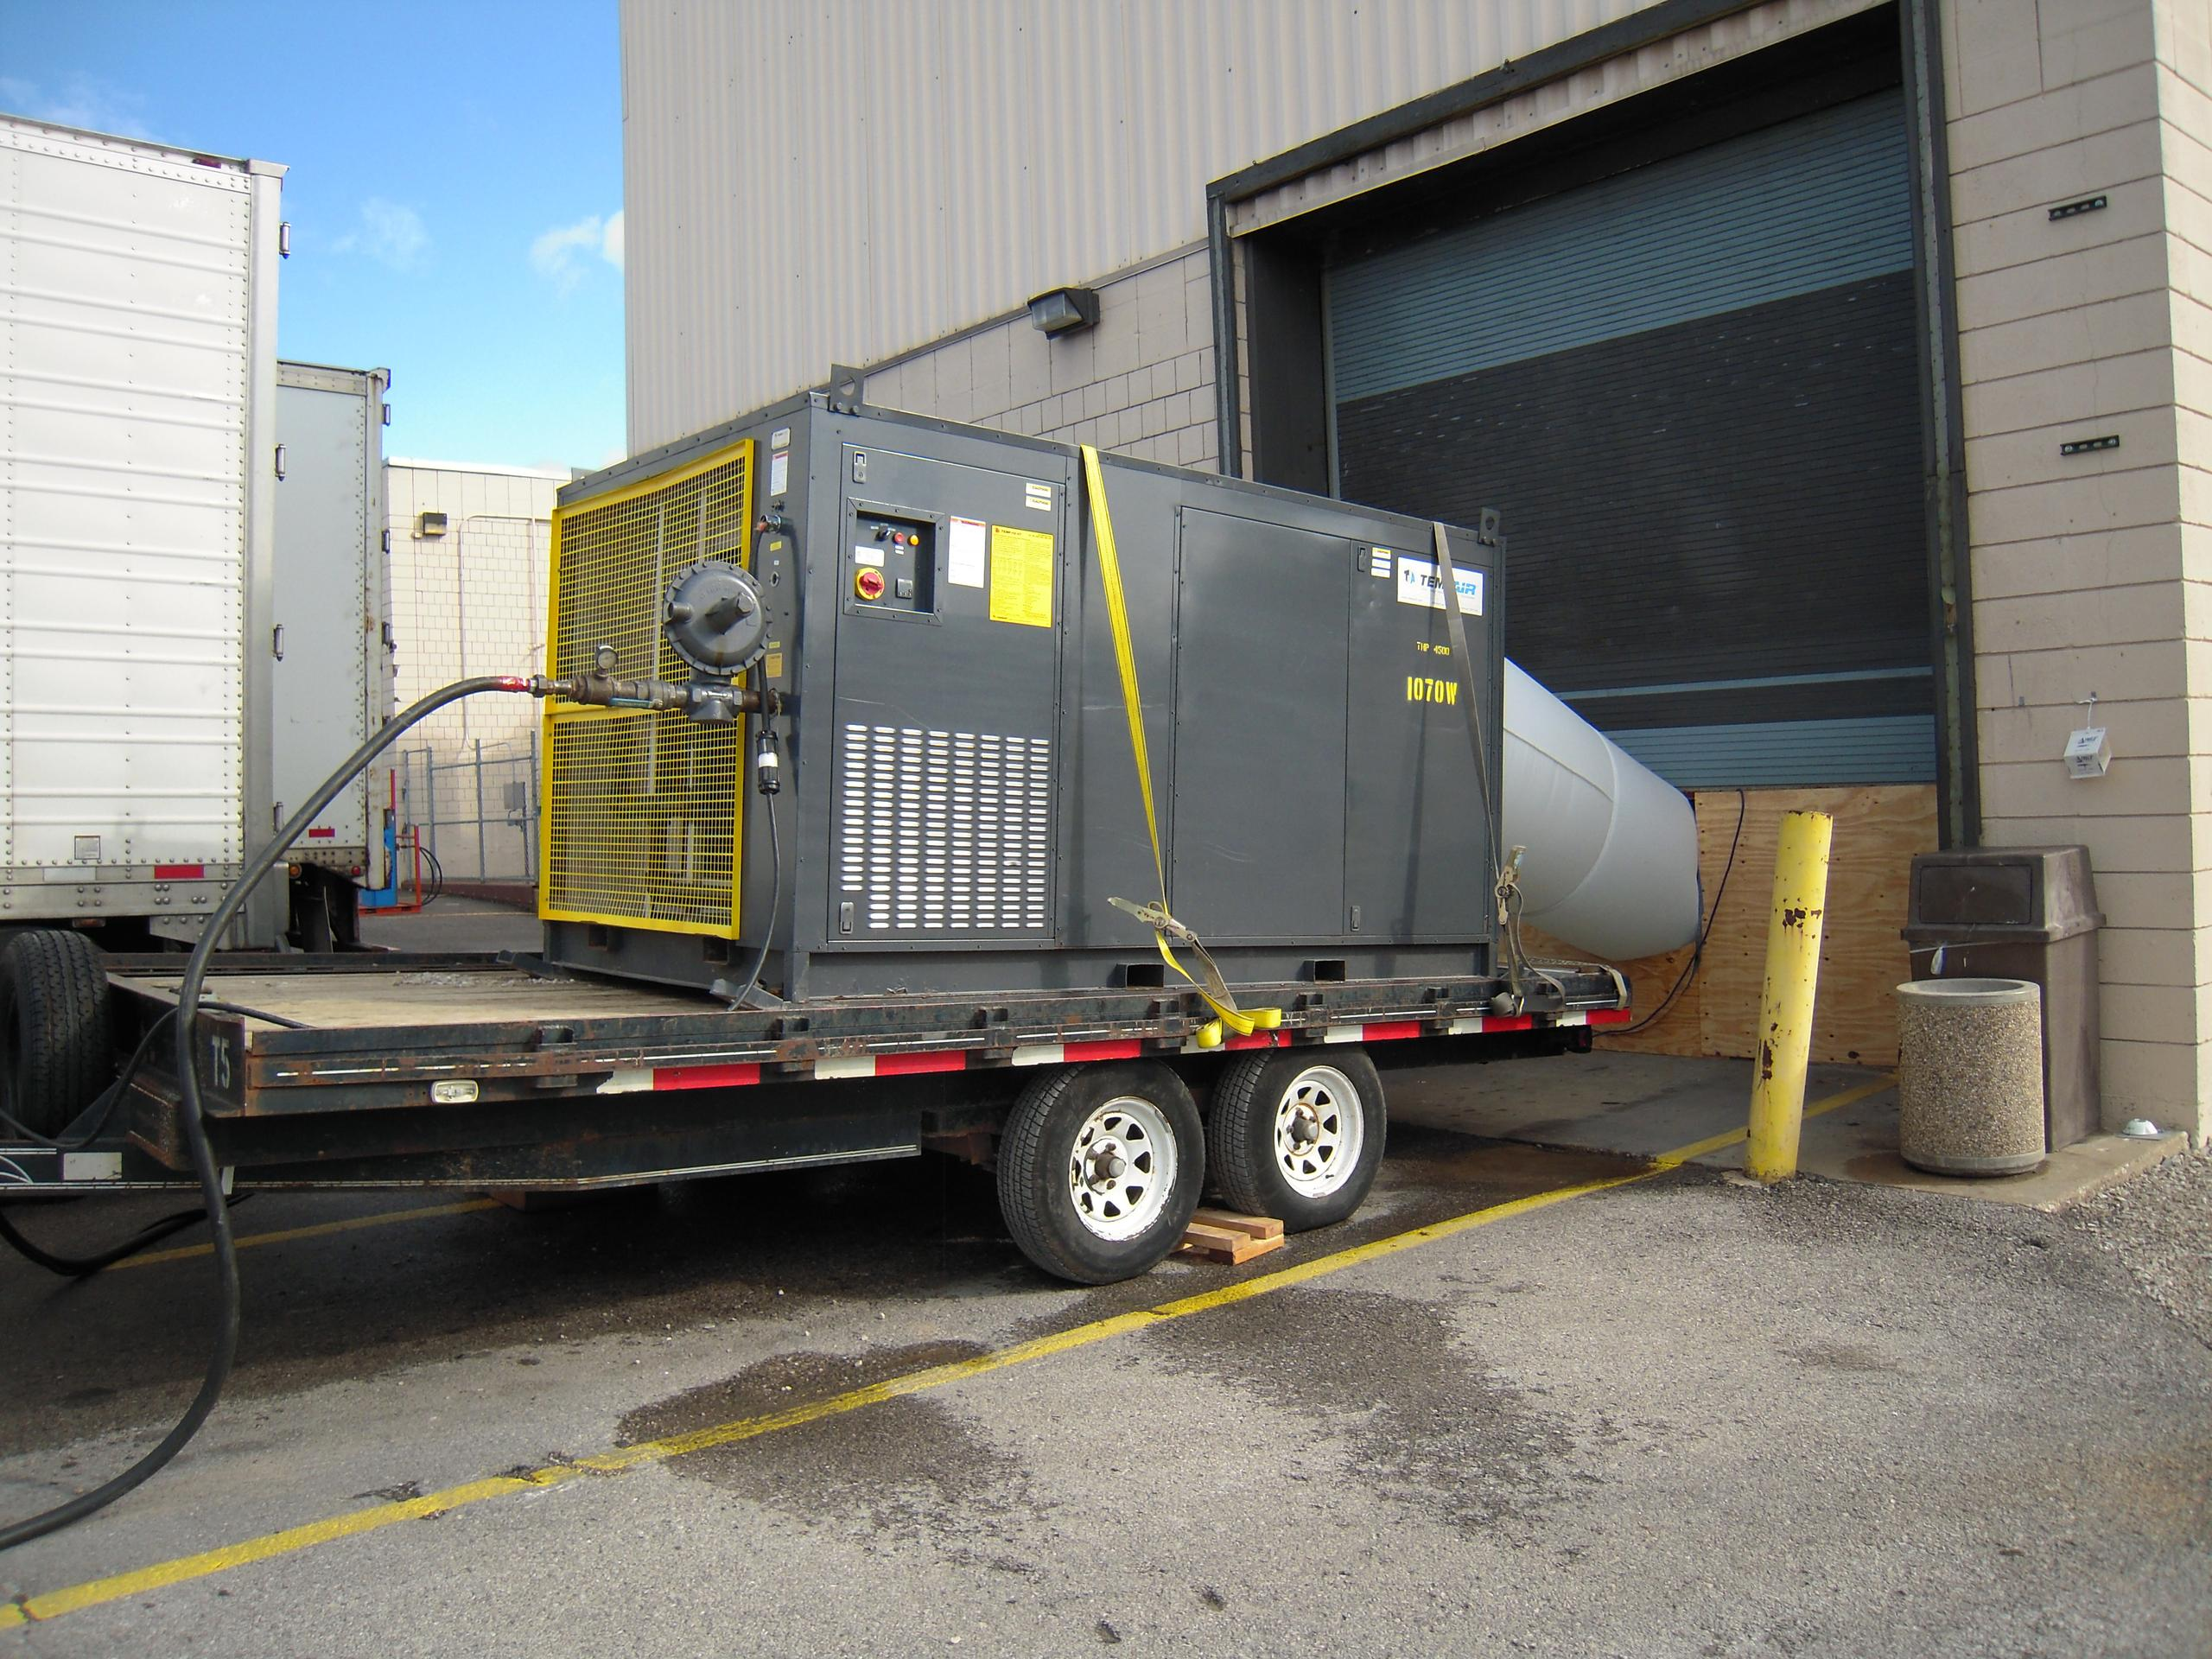 A generator sits ontop of a trailer outside a loading dock